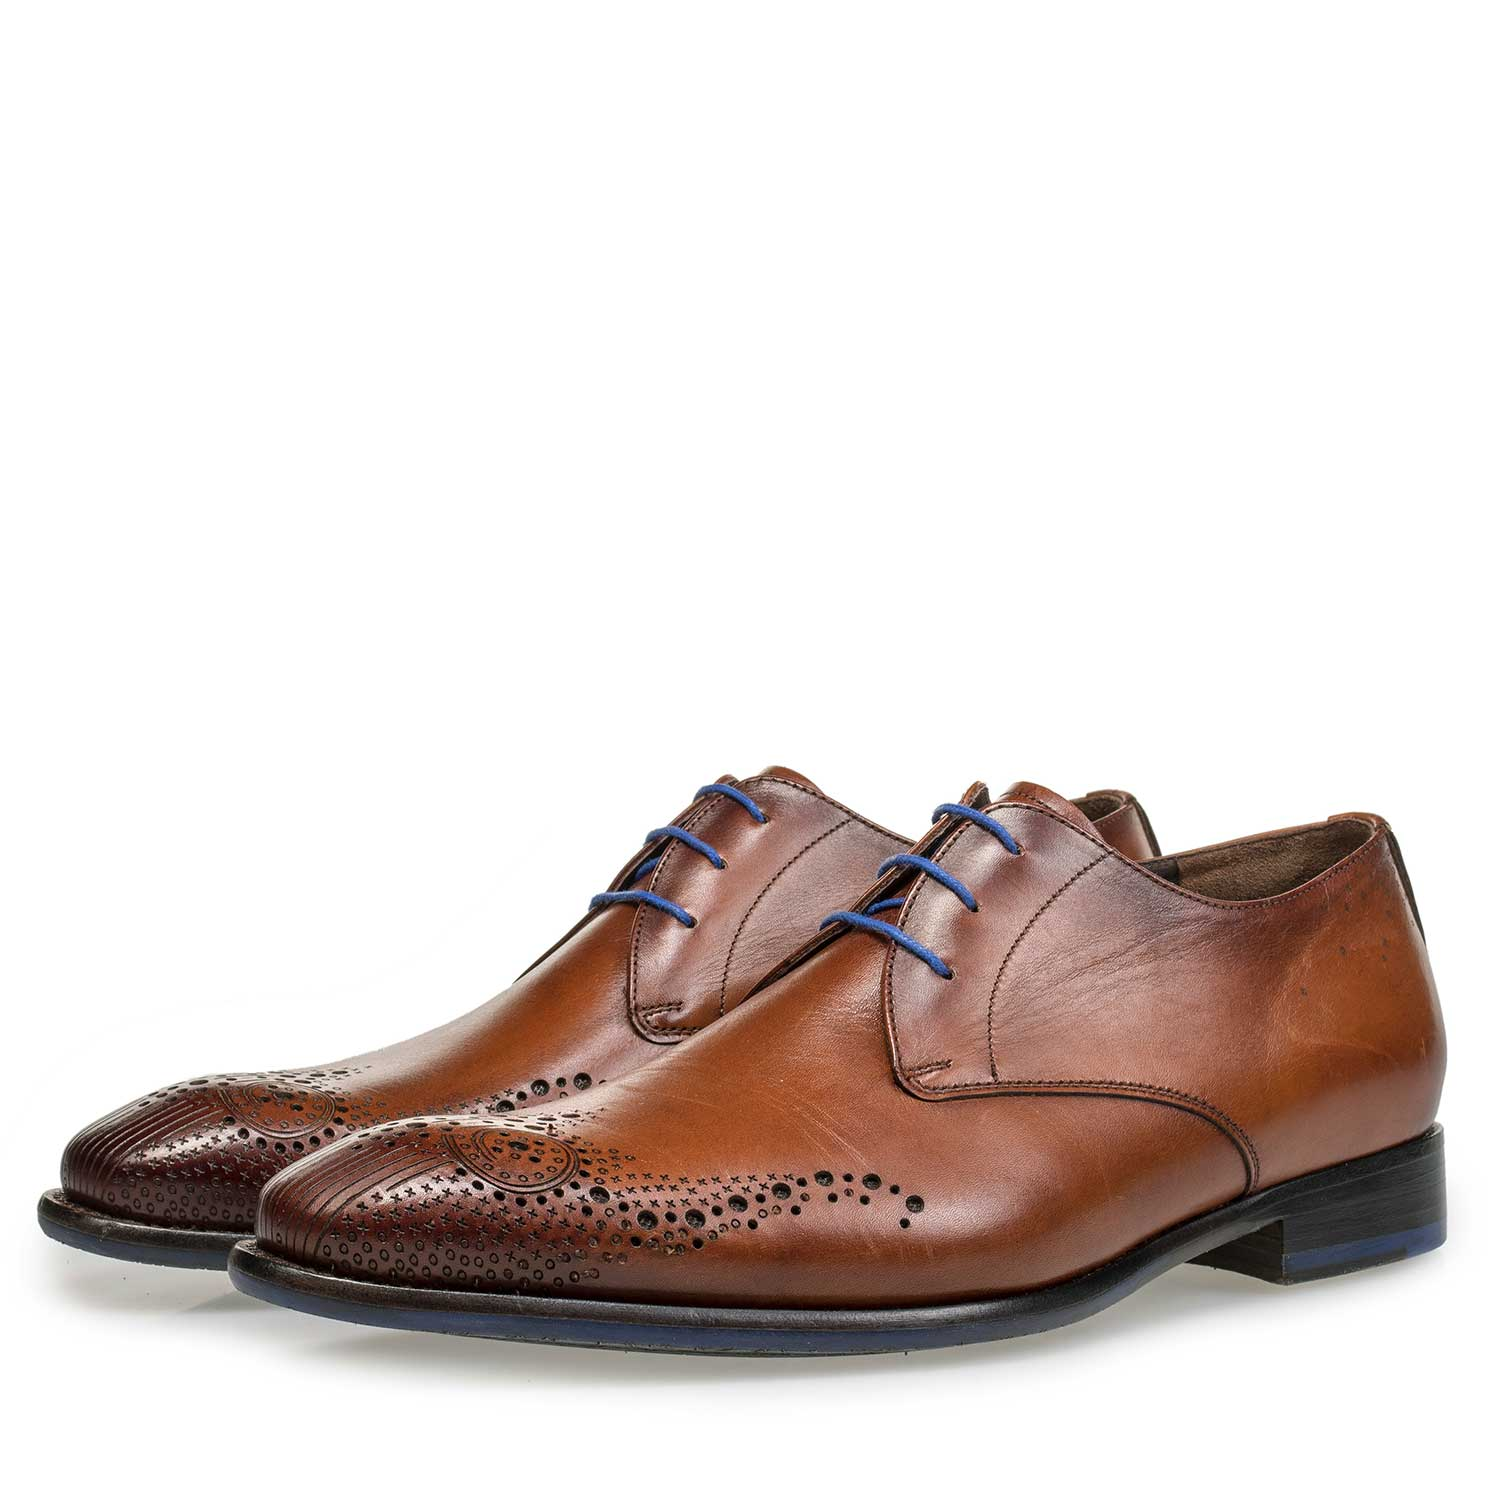 18075/00 - Cognac-coloured lace shoe with brogue details